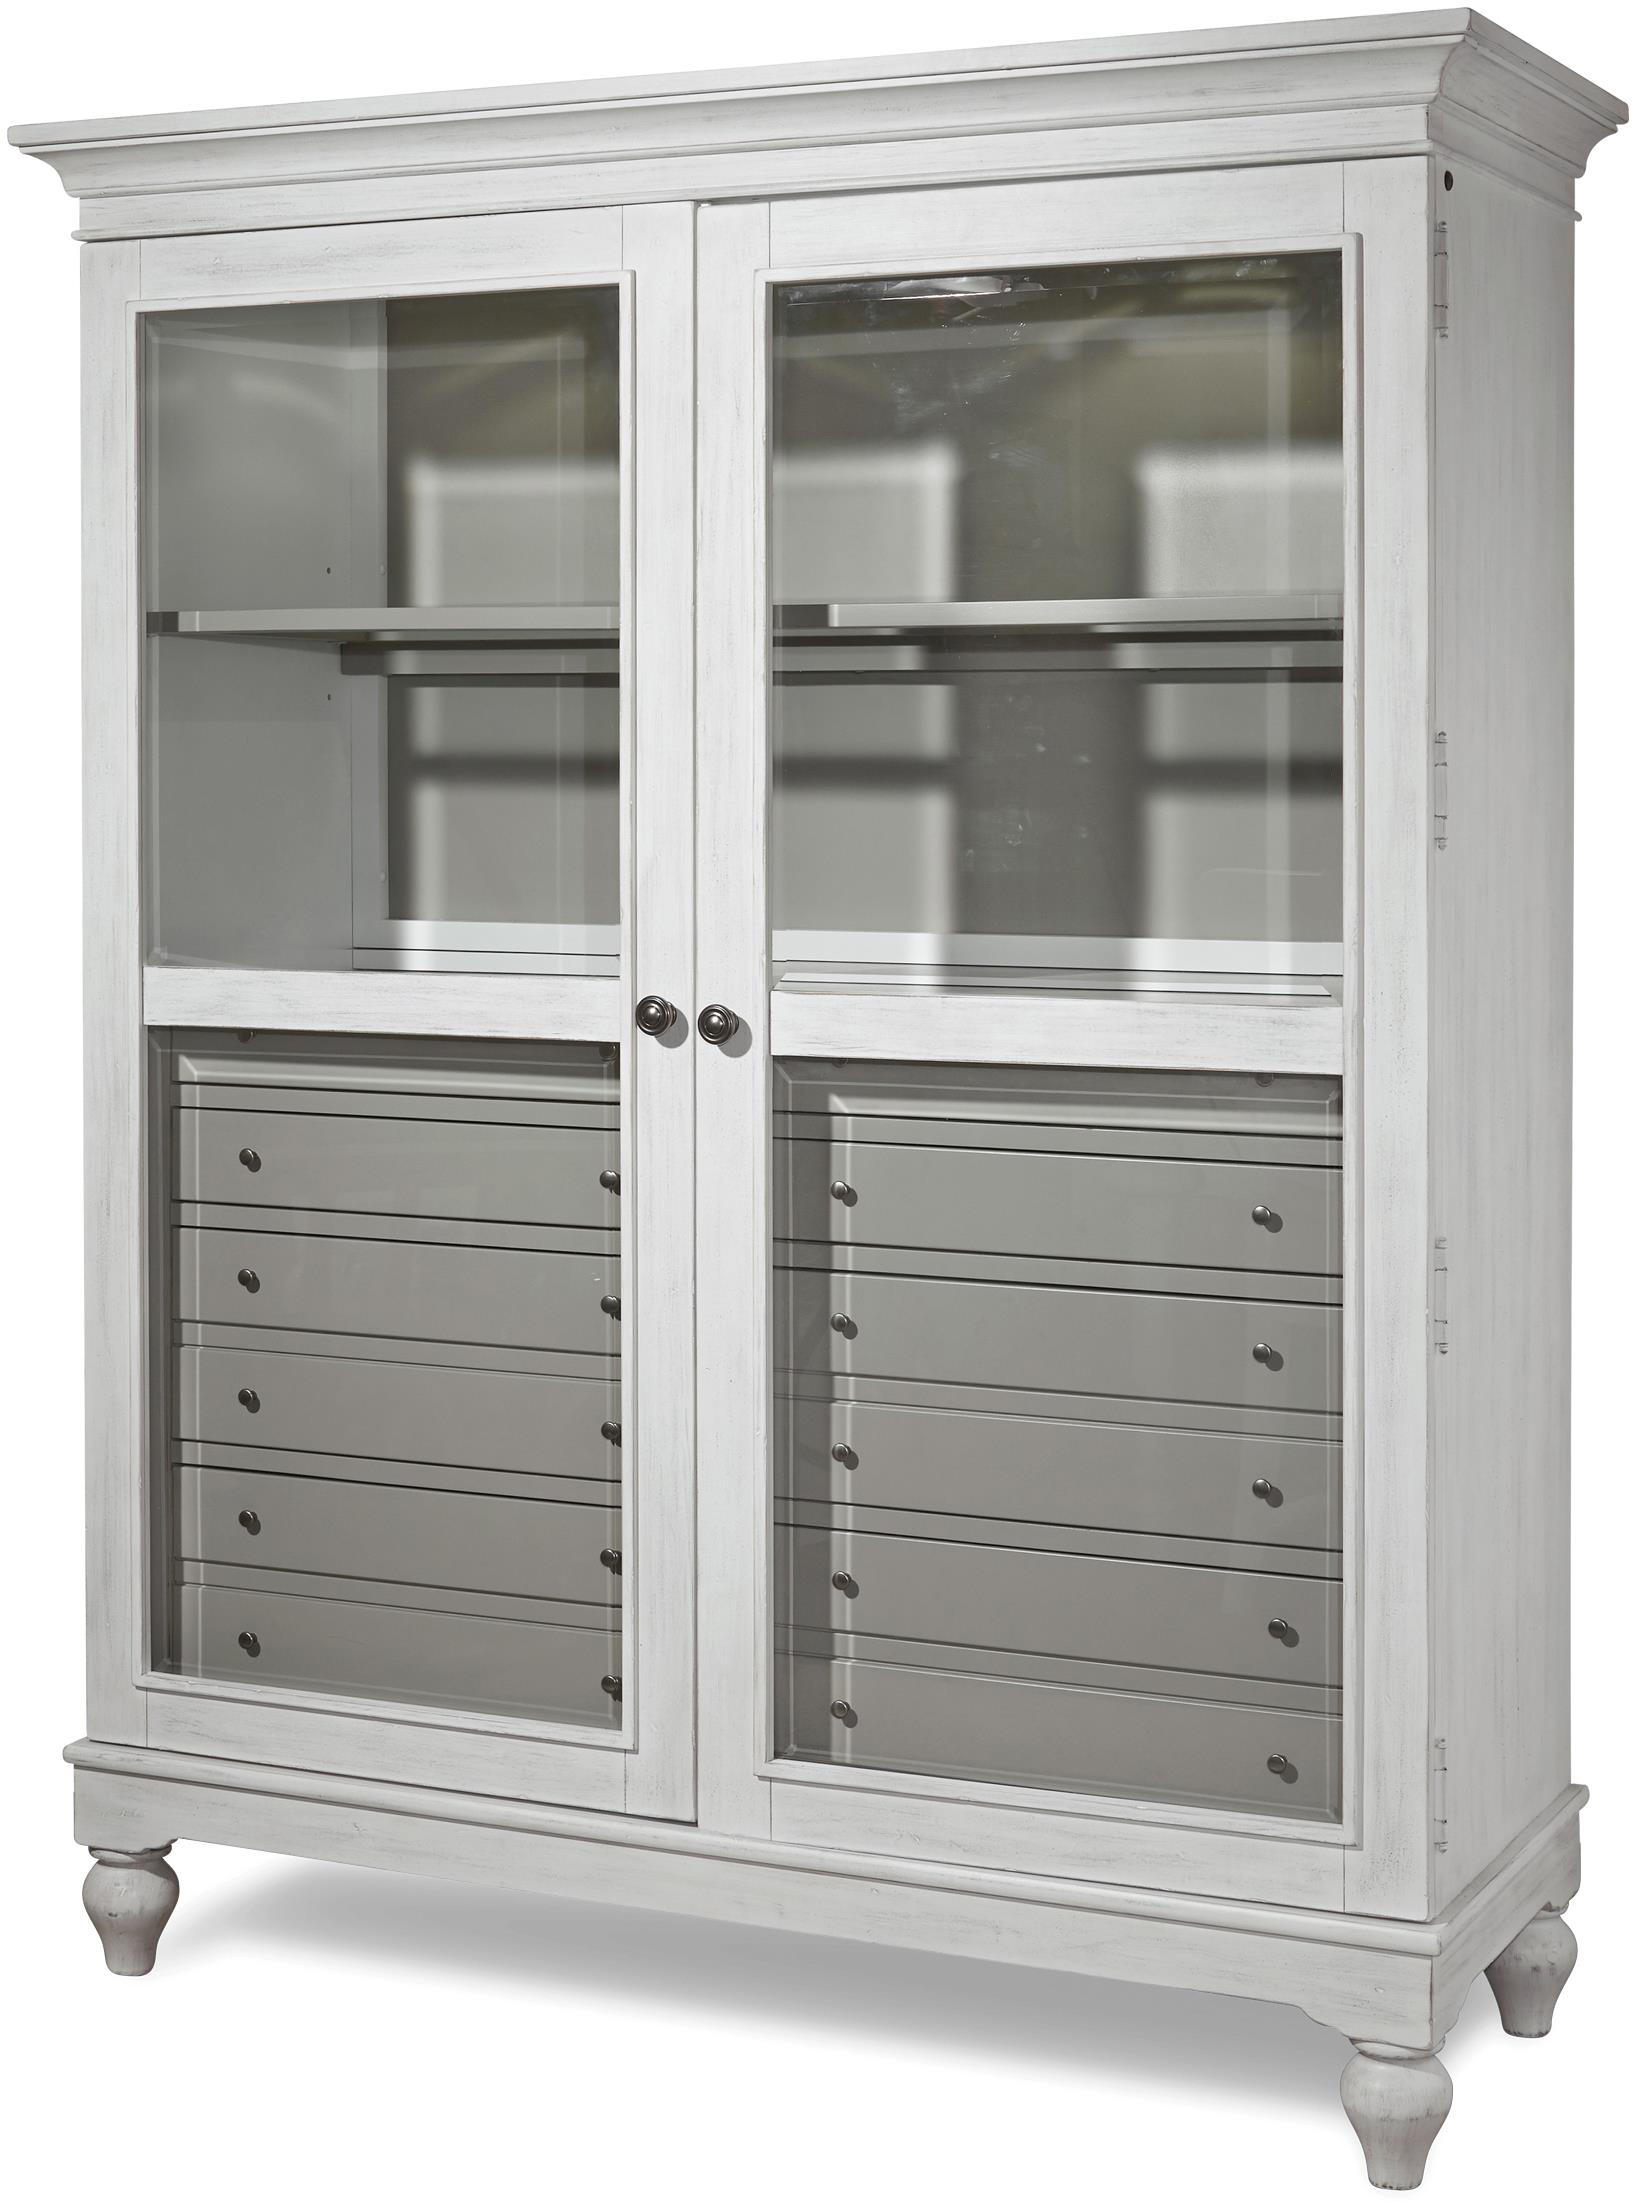 Paula Deen Kitchen Cabinets The Bag Lady Cabinet With Touch Lighting By Paula Deen By